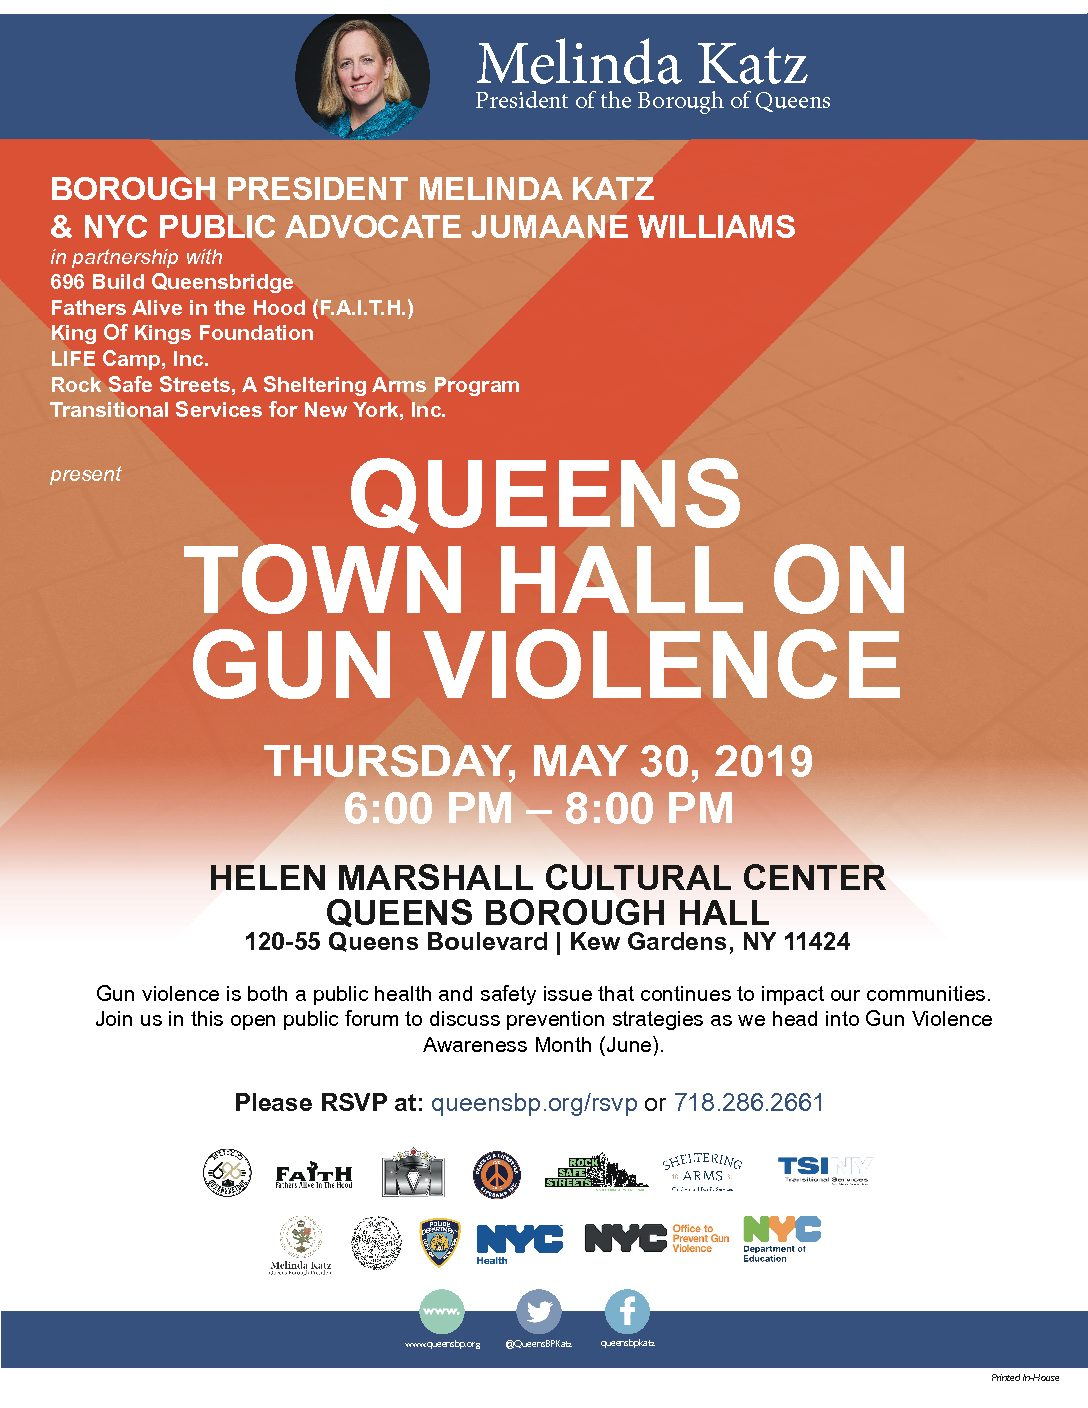 BOROUGH PRESIDENT KATZ, PUBLIC ADVOCATE WILLIAMS, COMMUNITY-BASED ORGANIZATIONS ANNOUNCE QUEENS TOWN HALL ON GUN VIOLENCE Thursday, May 30